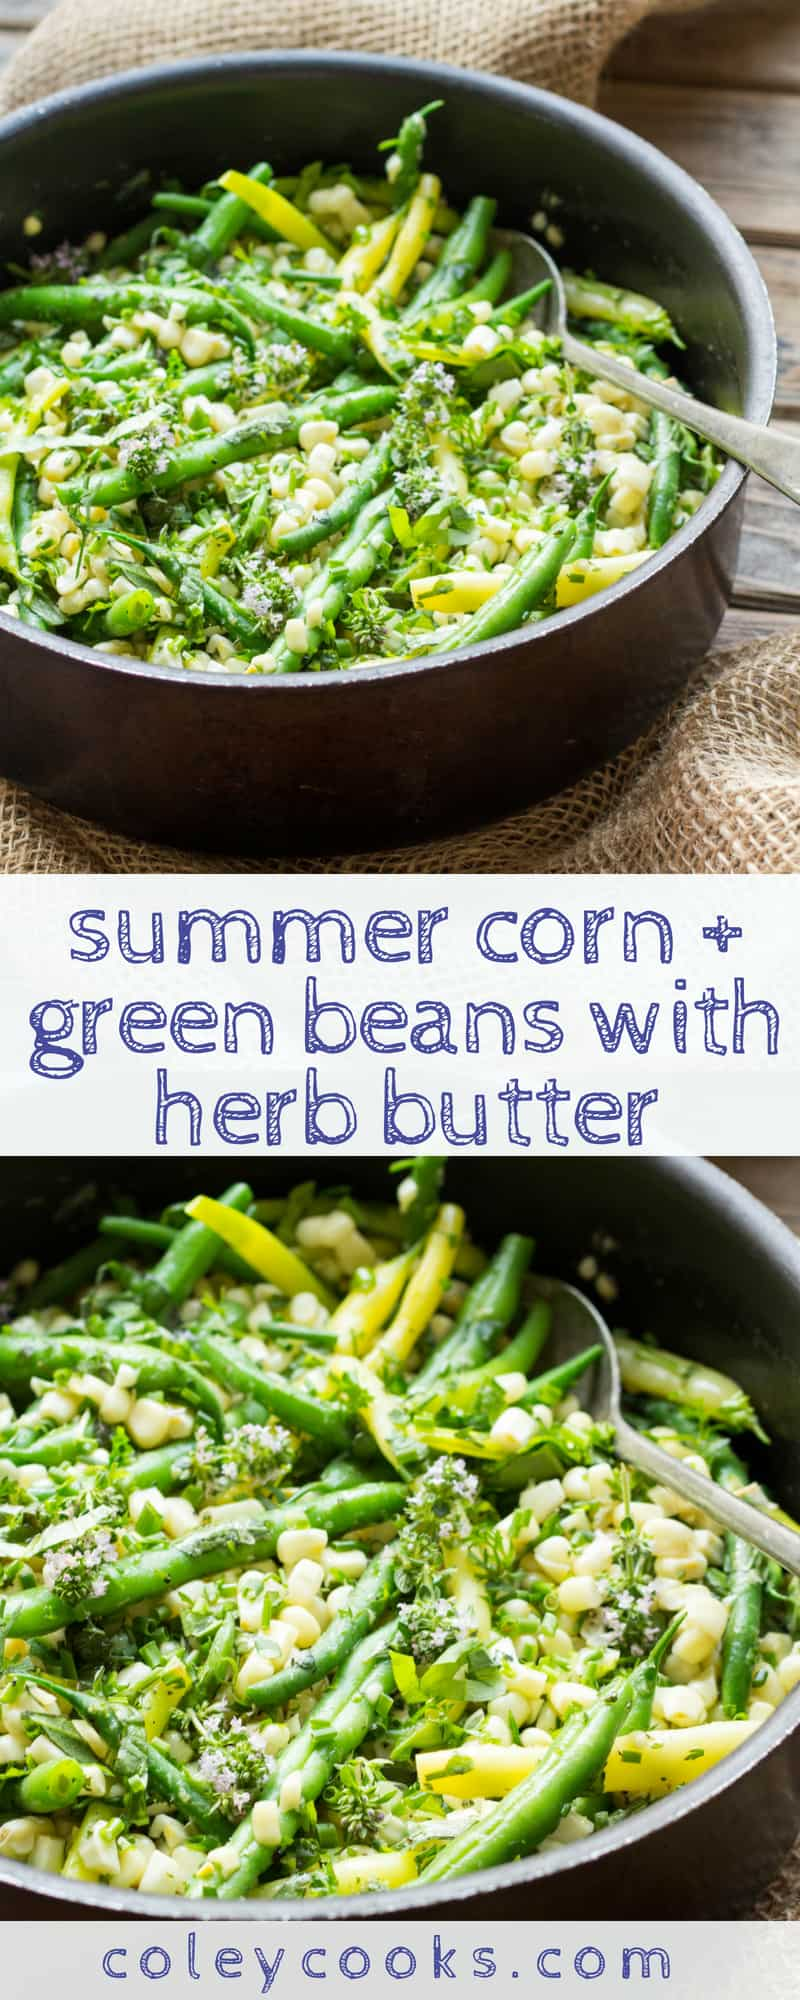 SUMMER CORN + GREEN BEANS with HERB BUTTER | Easy summer side dish recipe great with grilled summer dinners. Great use of seasonal vegetables! #recipe #sides #summer #vegetarian #corn | ColeyCooks.com